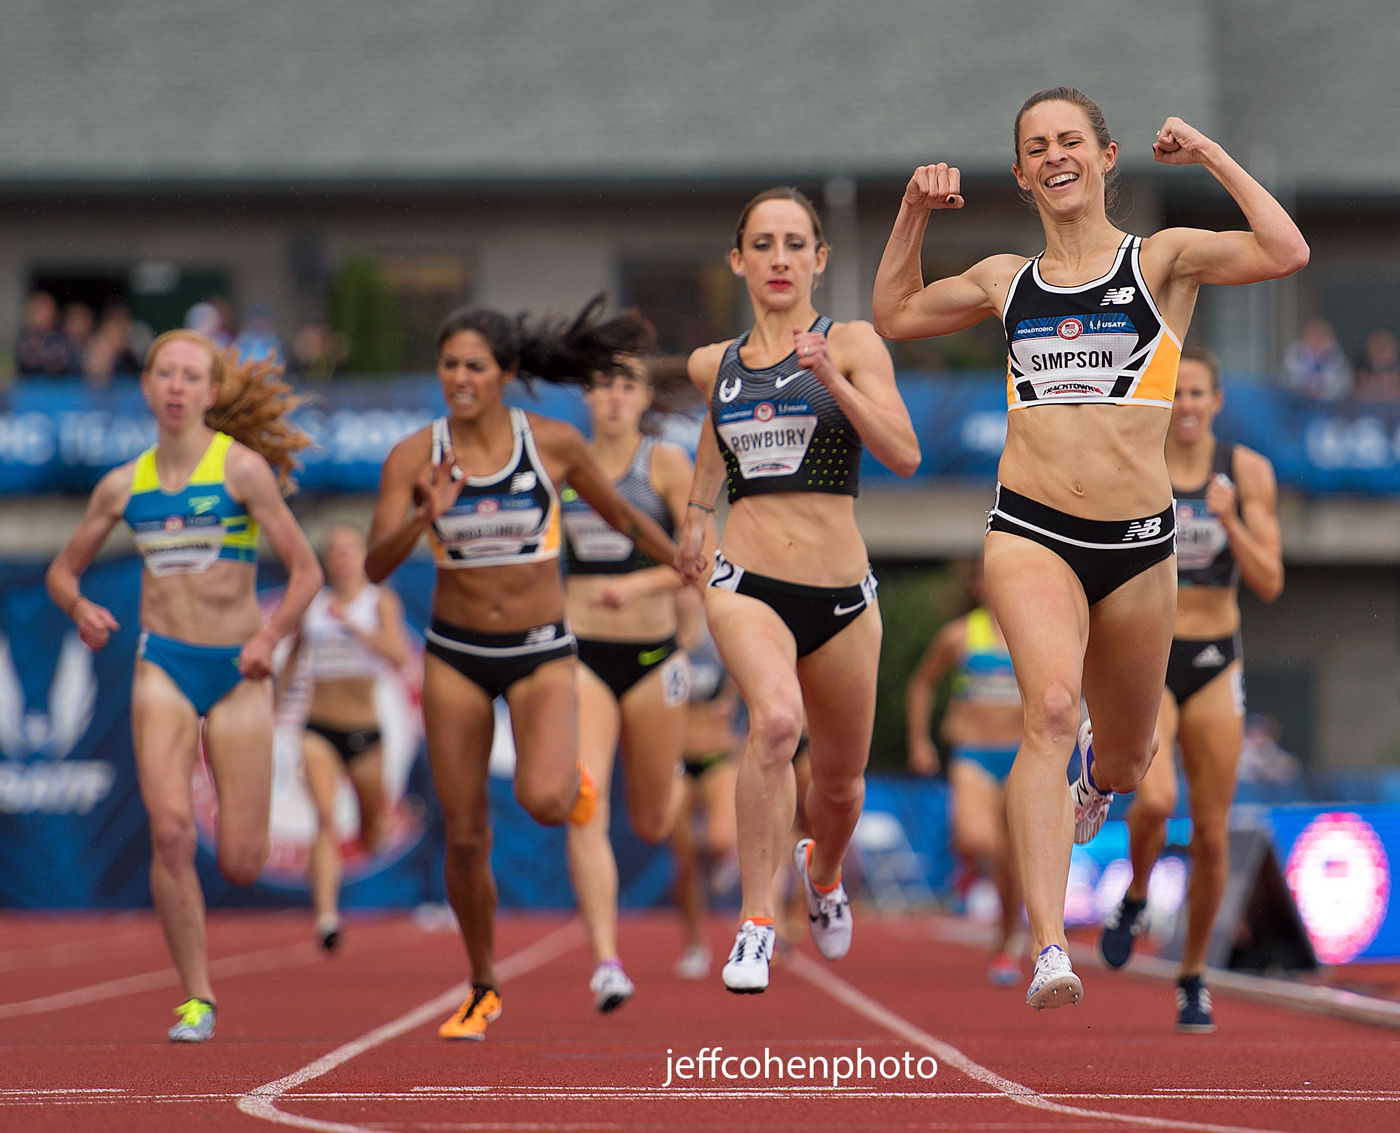 1r2016_oly_trials_day_9_jenny_simpson_1500m_win_jeff_cohen_photo_29510_web.jpg